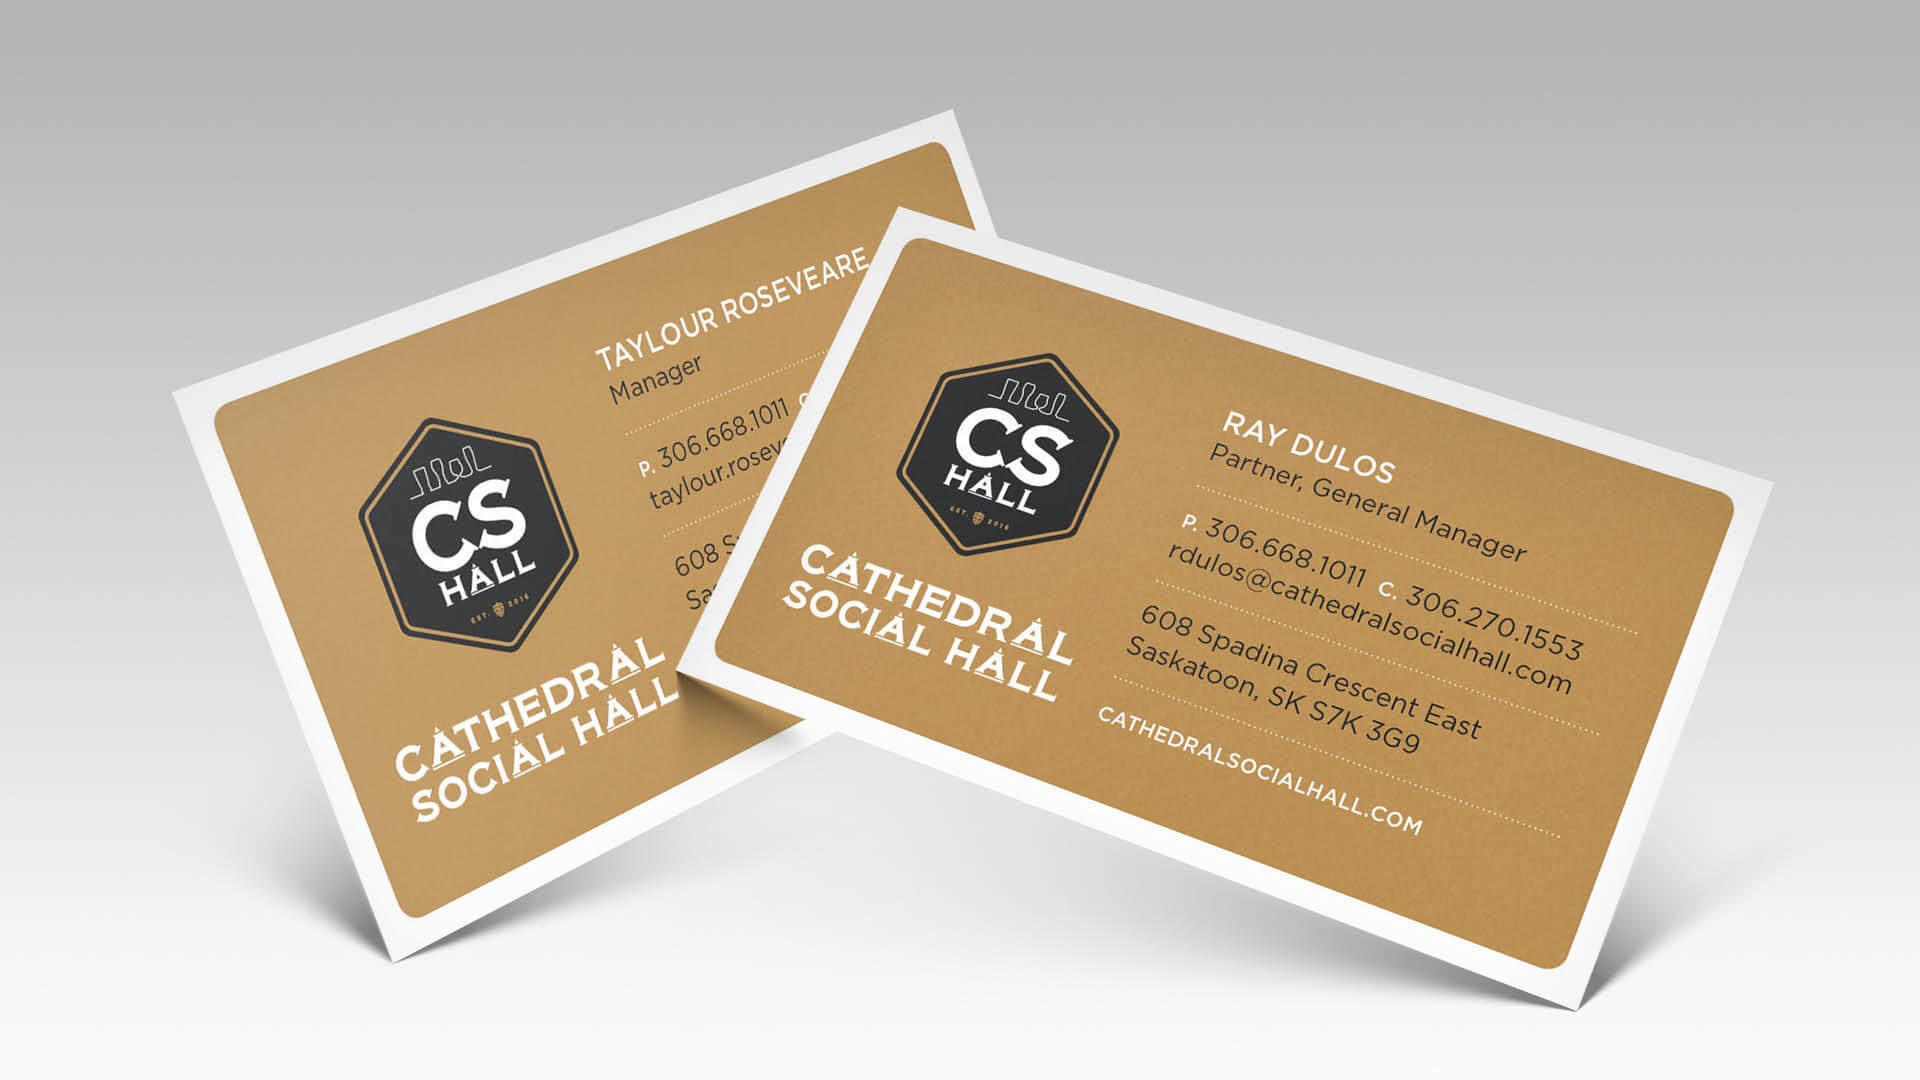 Cathedral Social Hall, Print, CS Hall Business Cards, Portfolio Image